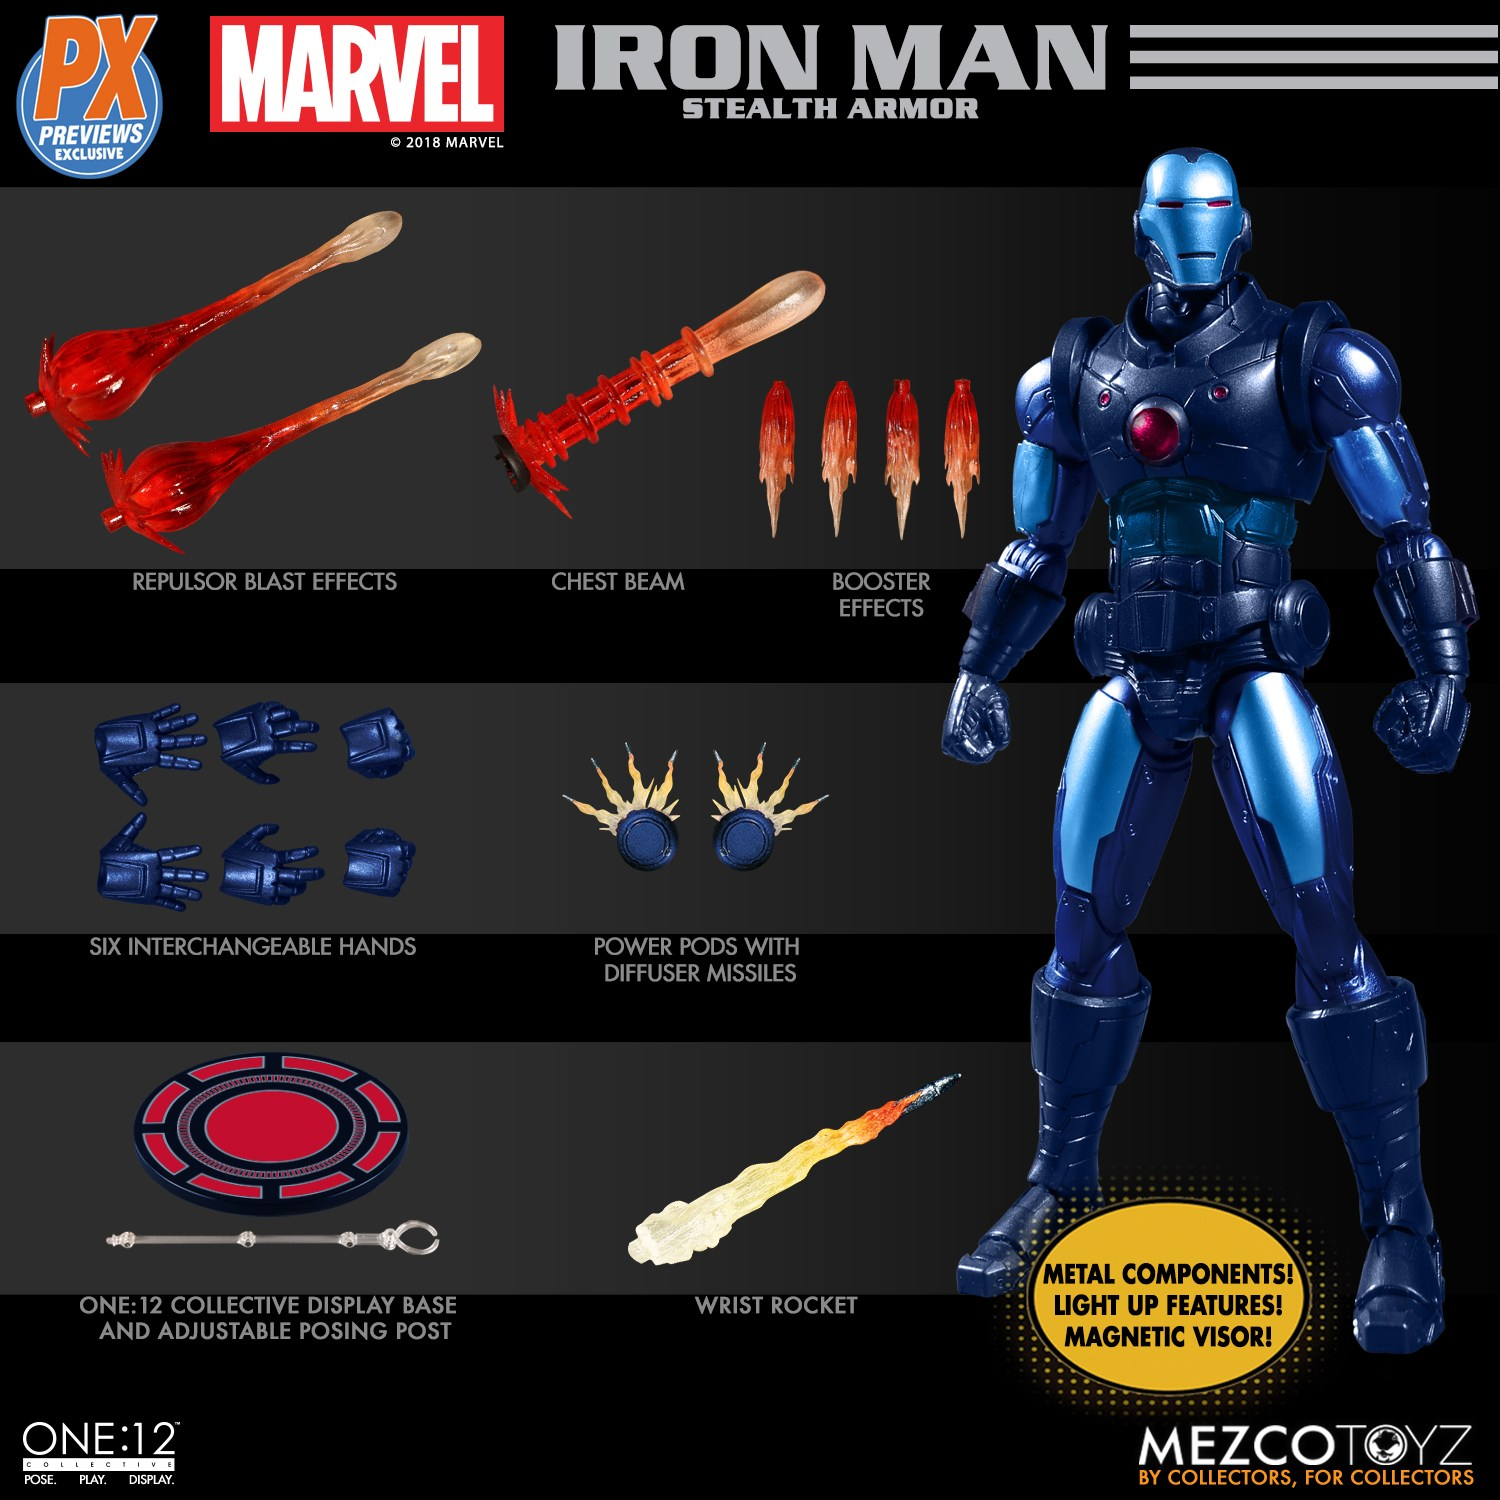 Mezco-One12-Previews-PX-Exclusive-Iron-Man-5